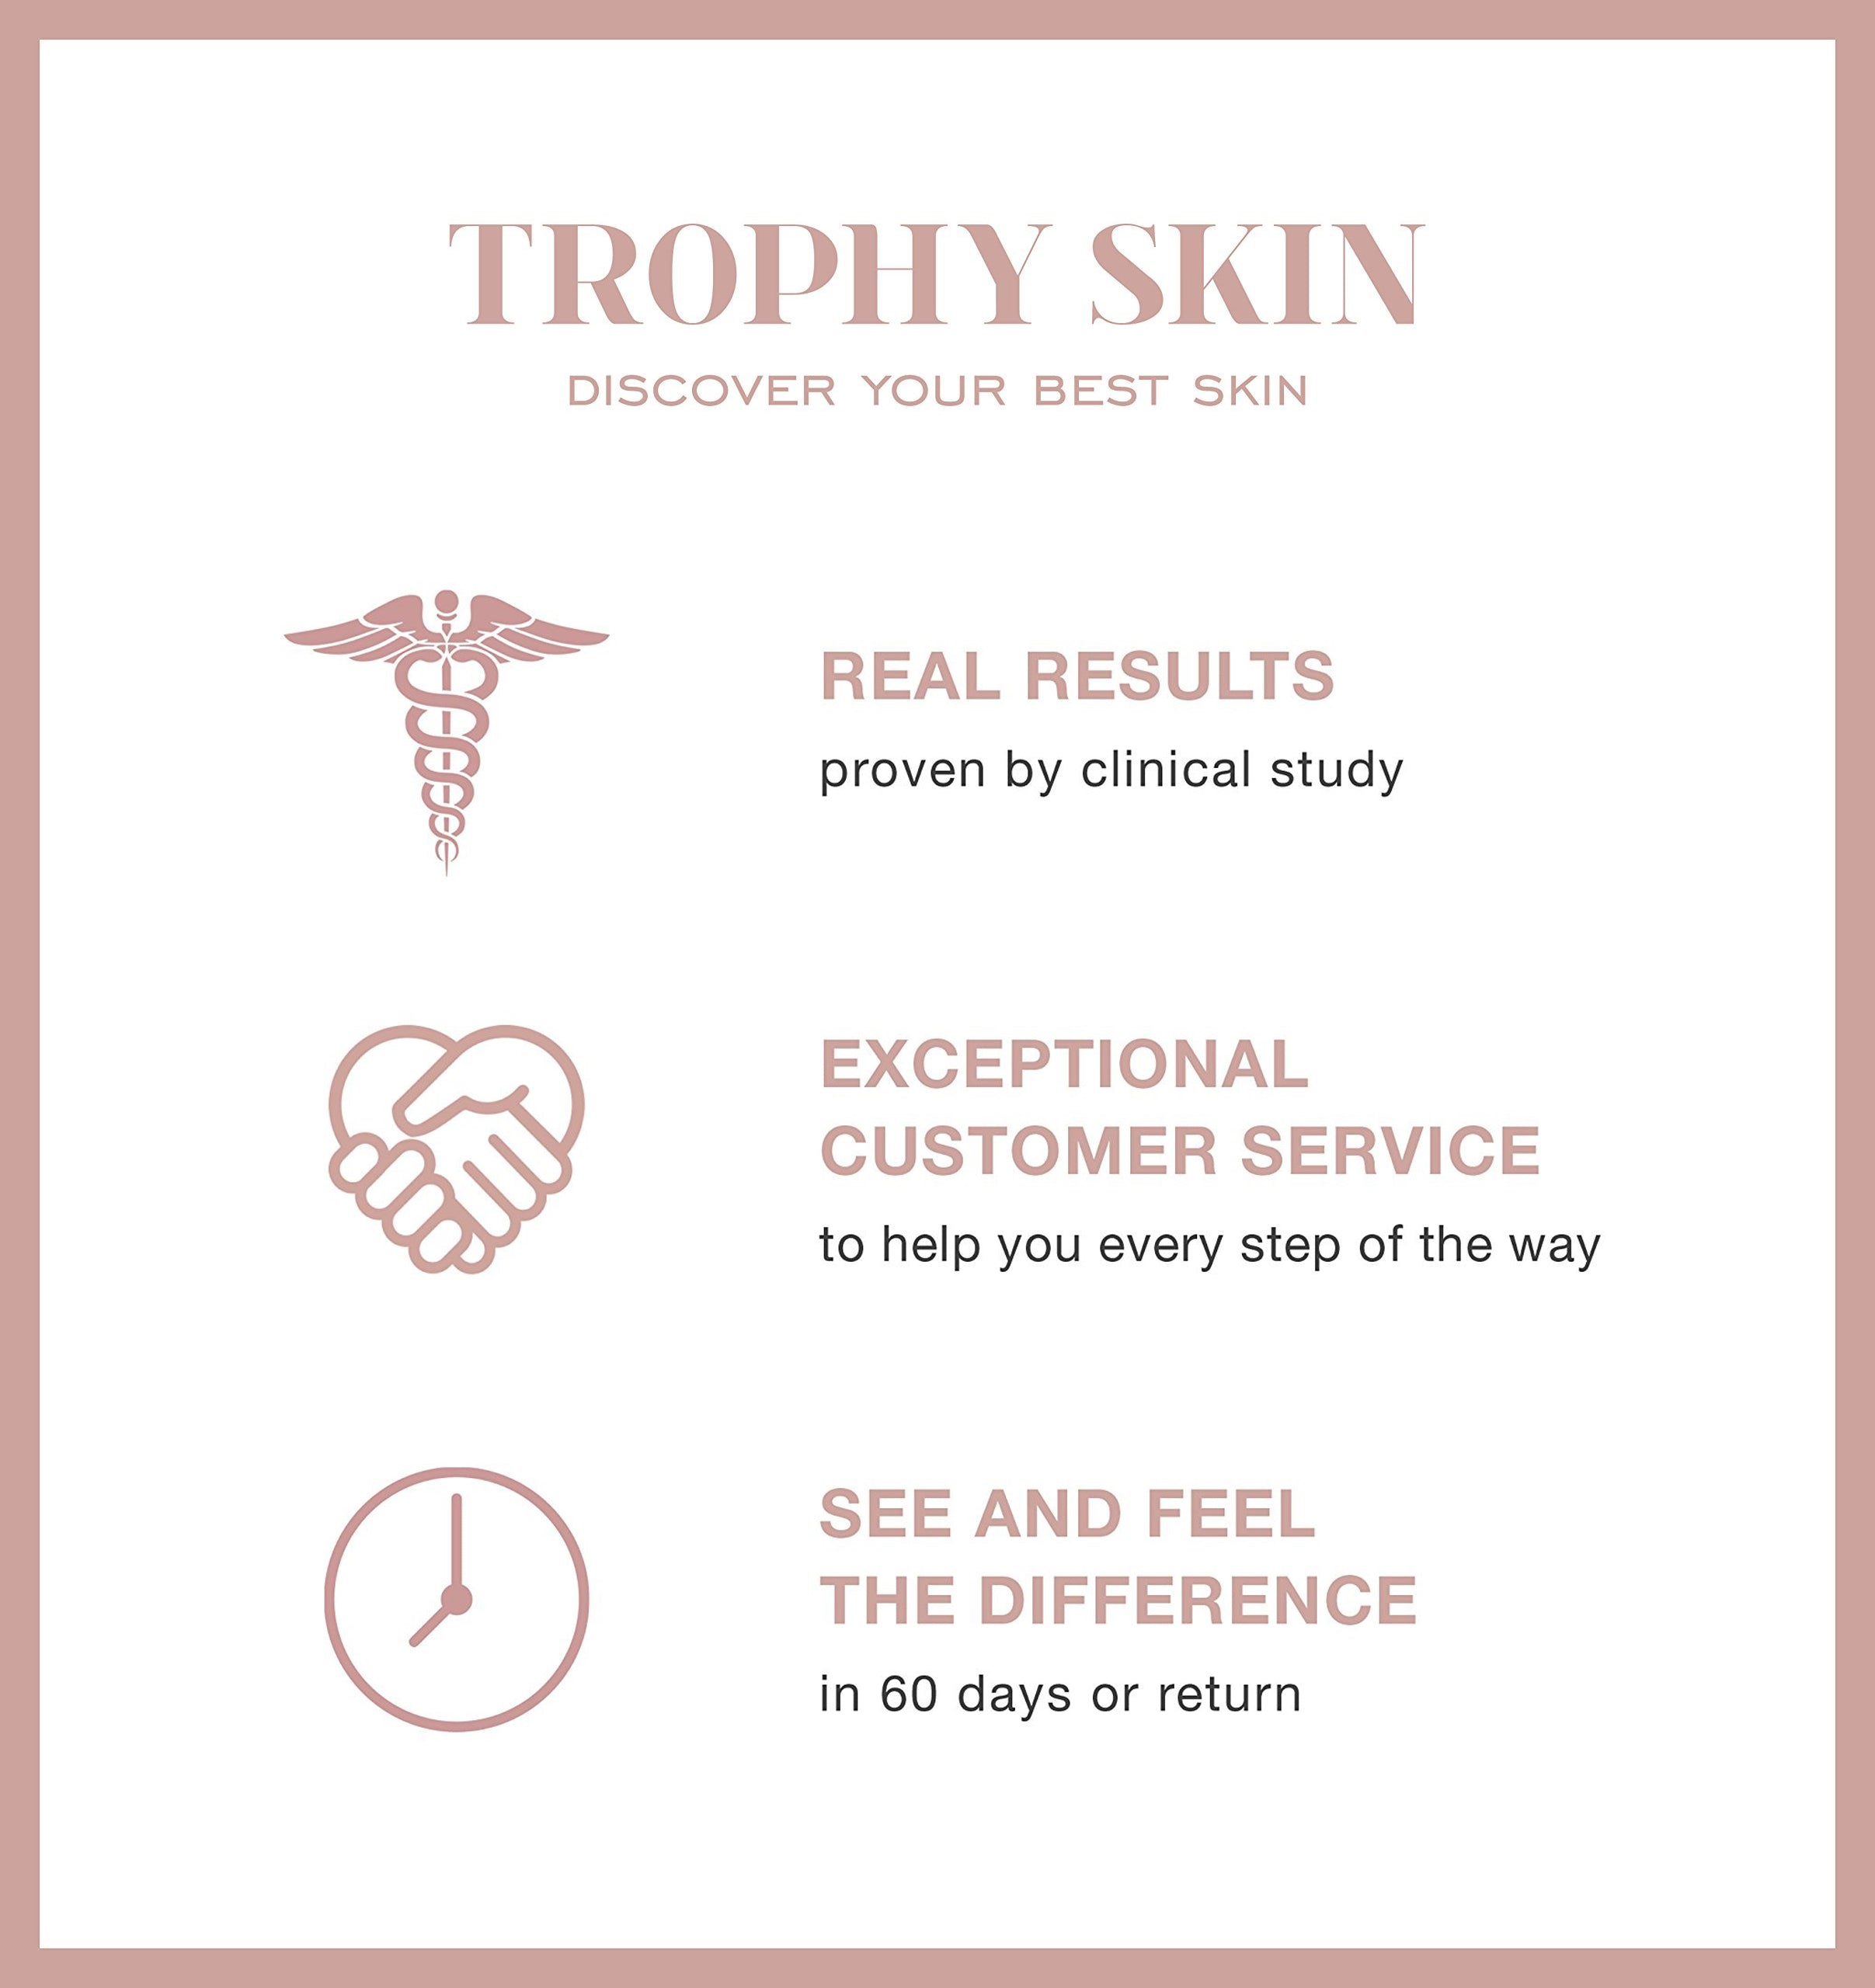 trophy skin 60 day guarantee to transform skin